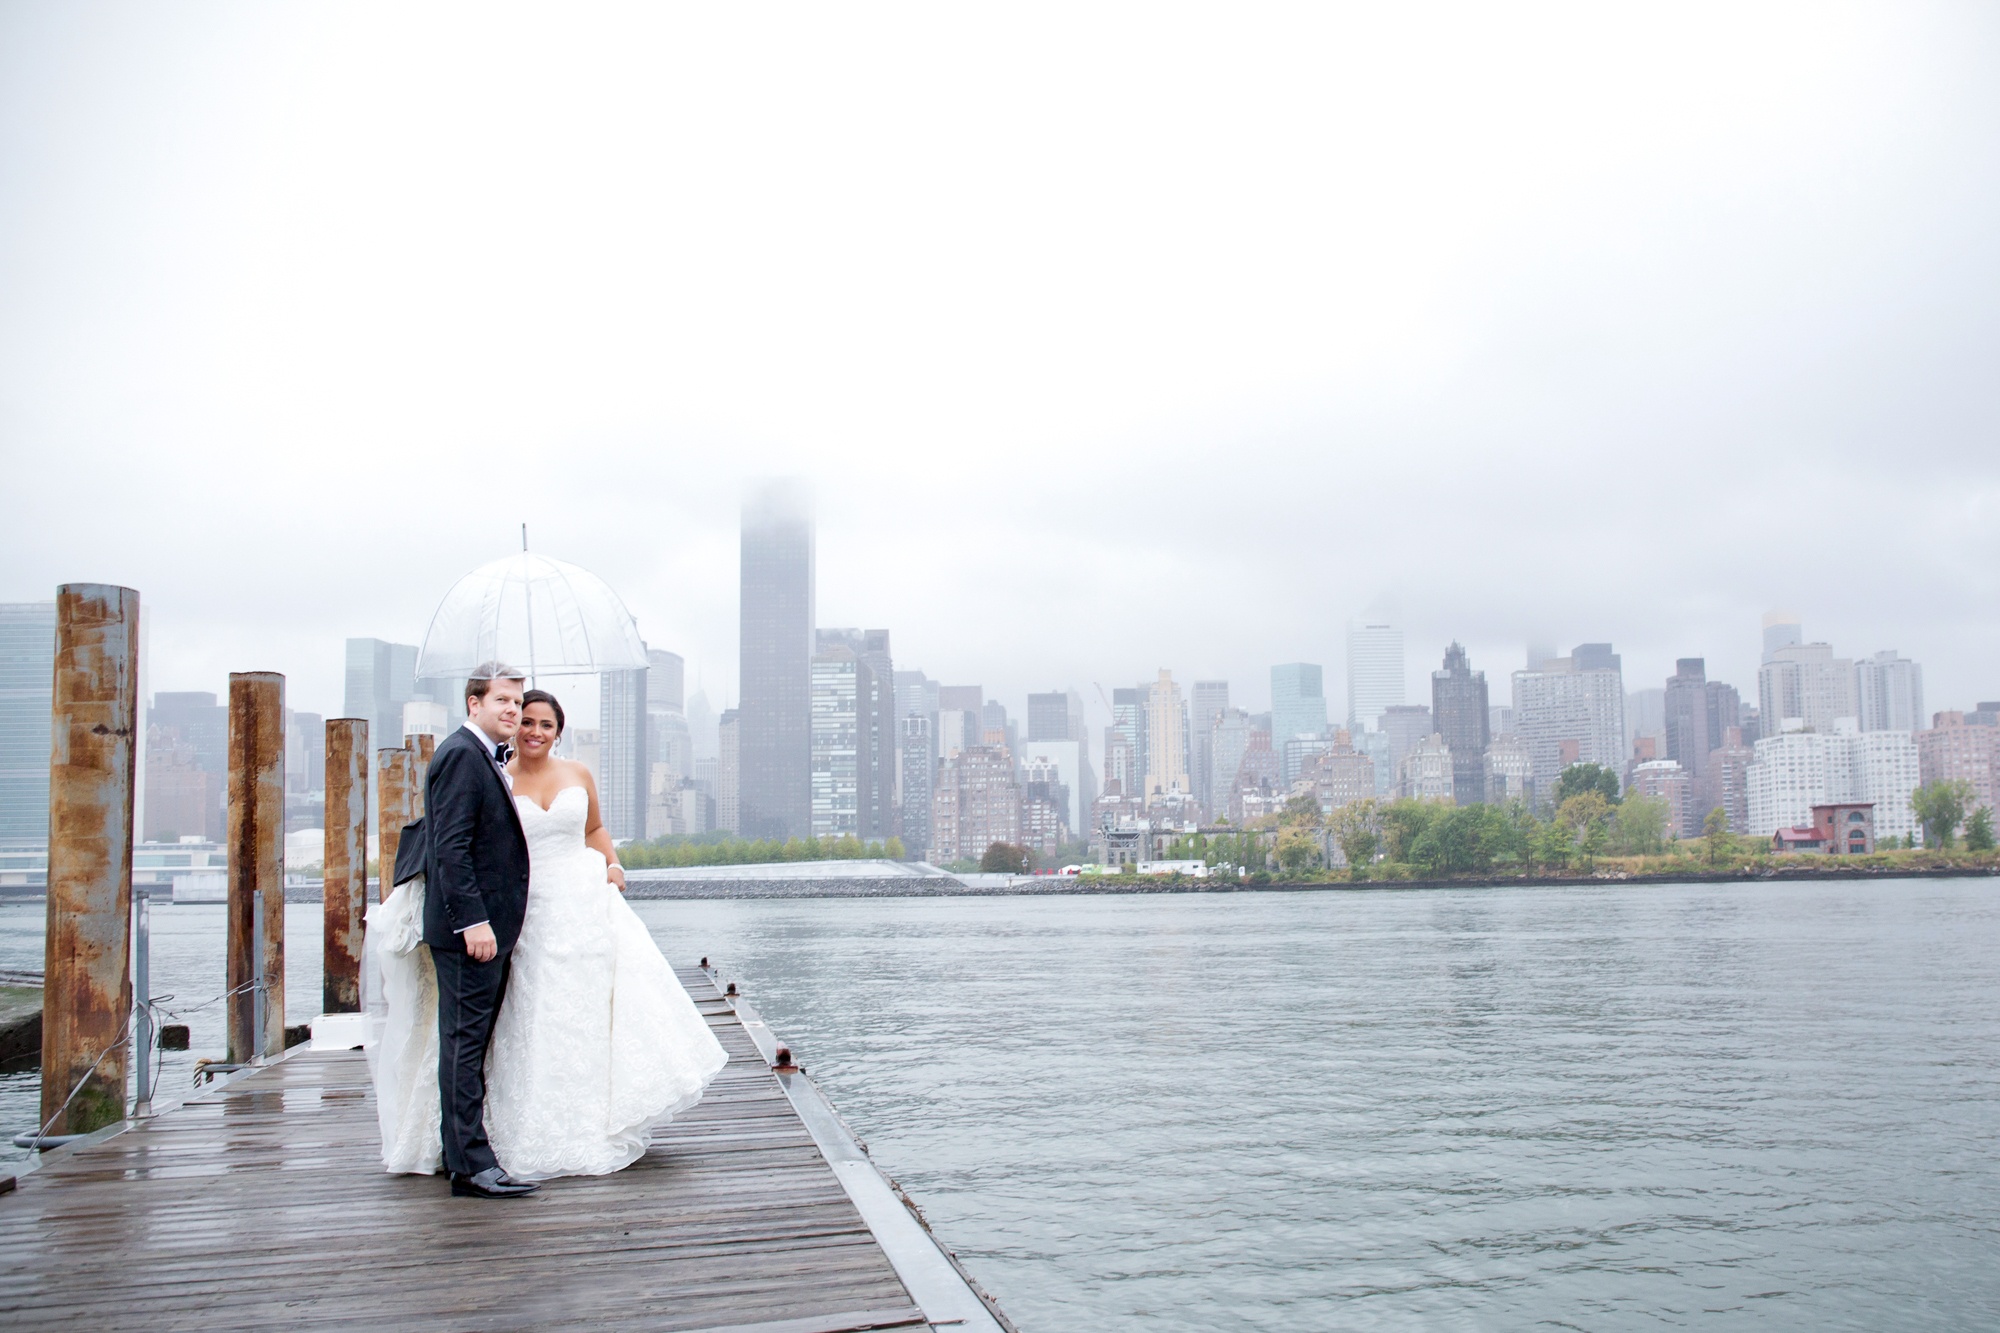 142_CarlyGaebe_SteadfastStudio_WeddingPhotography_NewYork_LongIslandCity_WatersEdge_EastRiver_Rainy_Umbrella_Bride_Groom.jpg